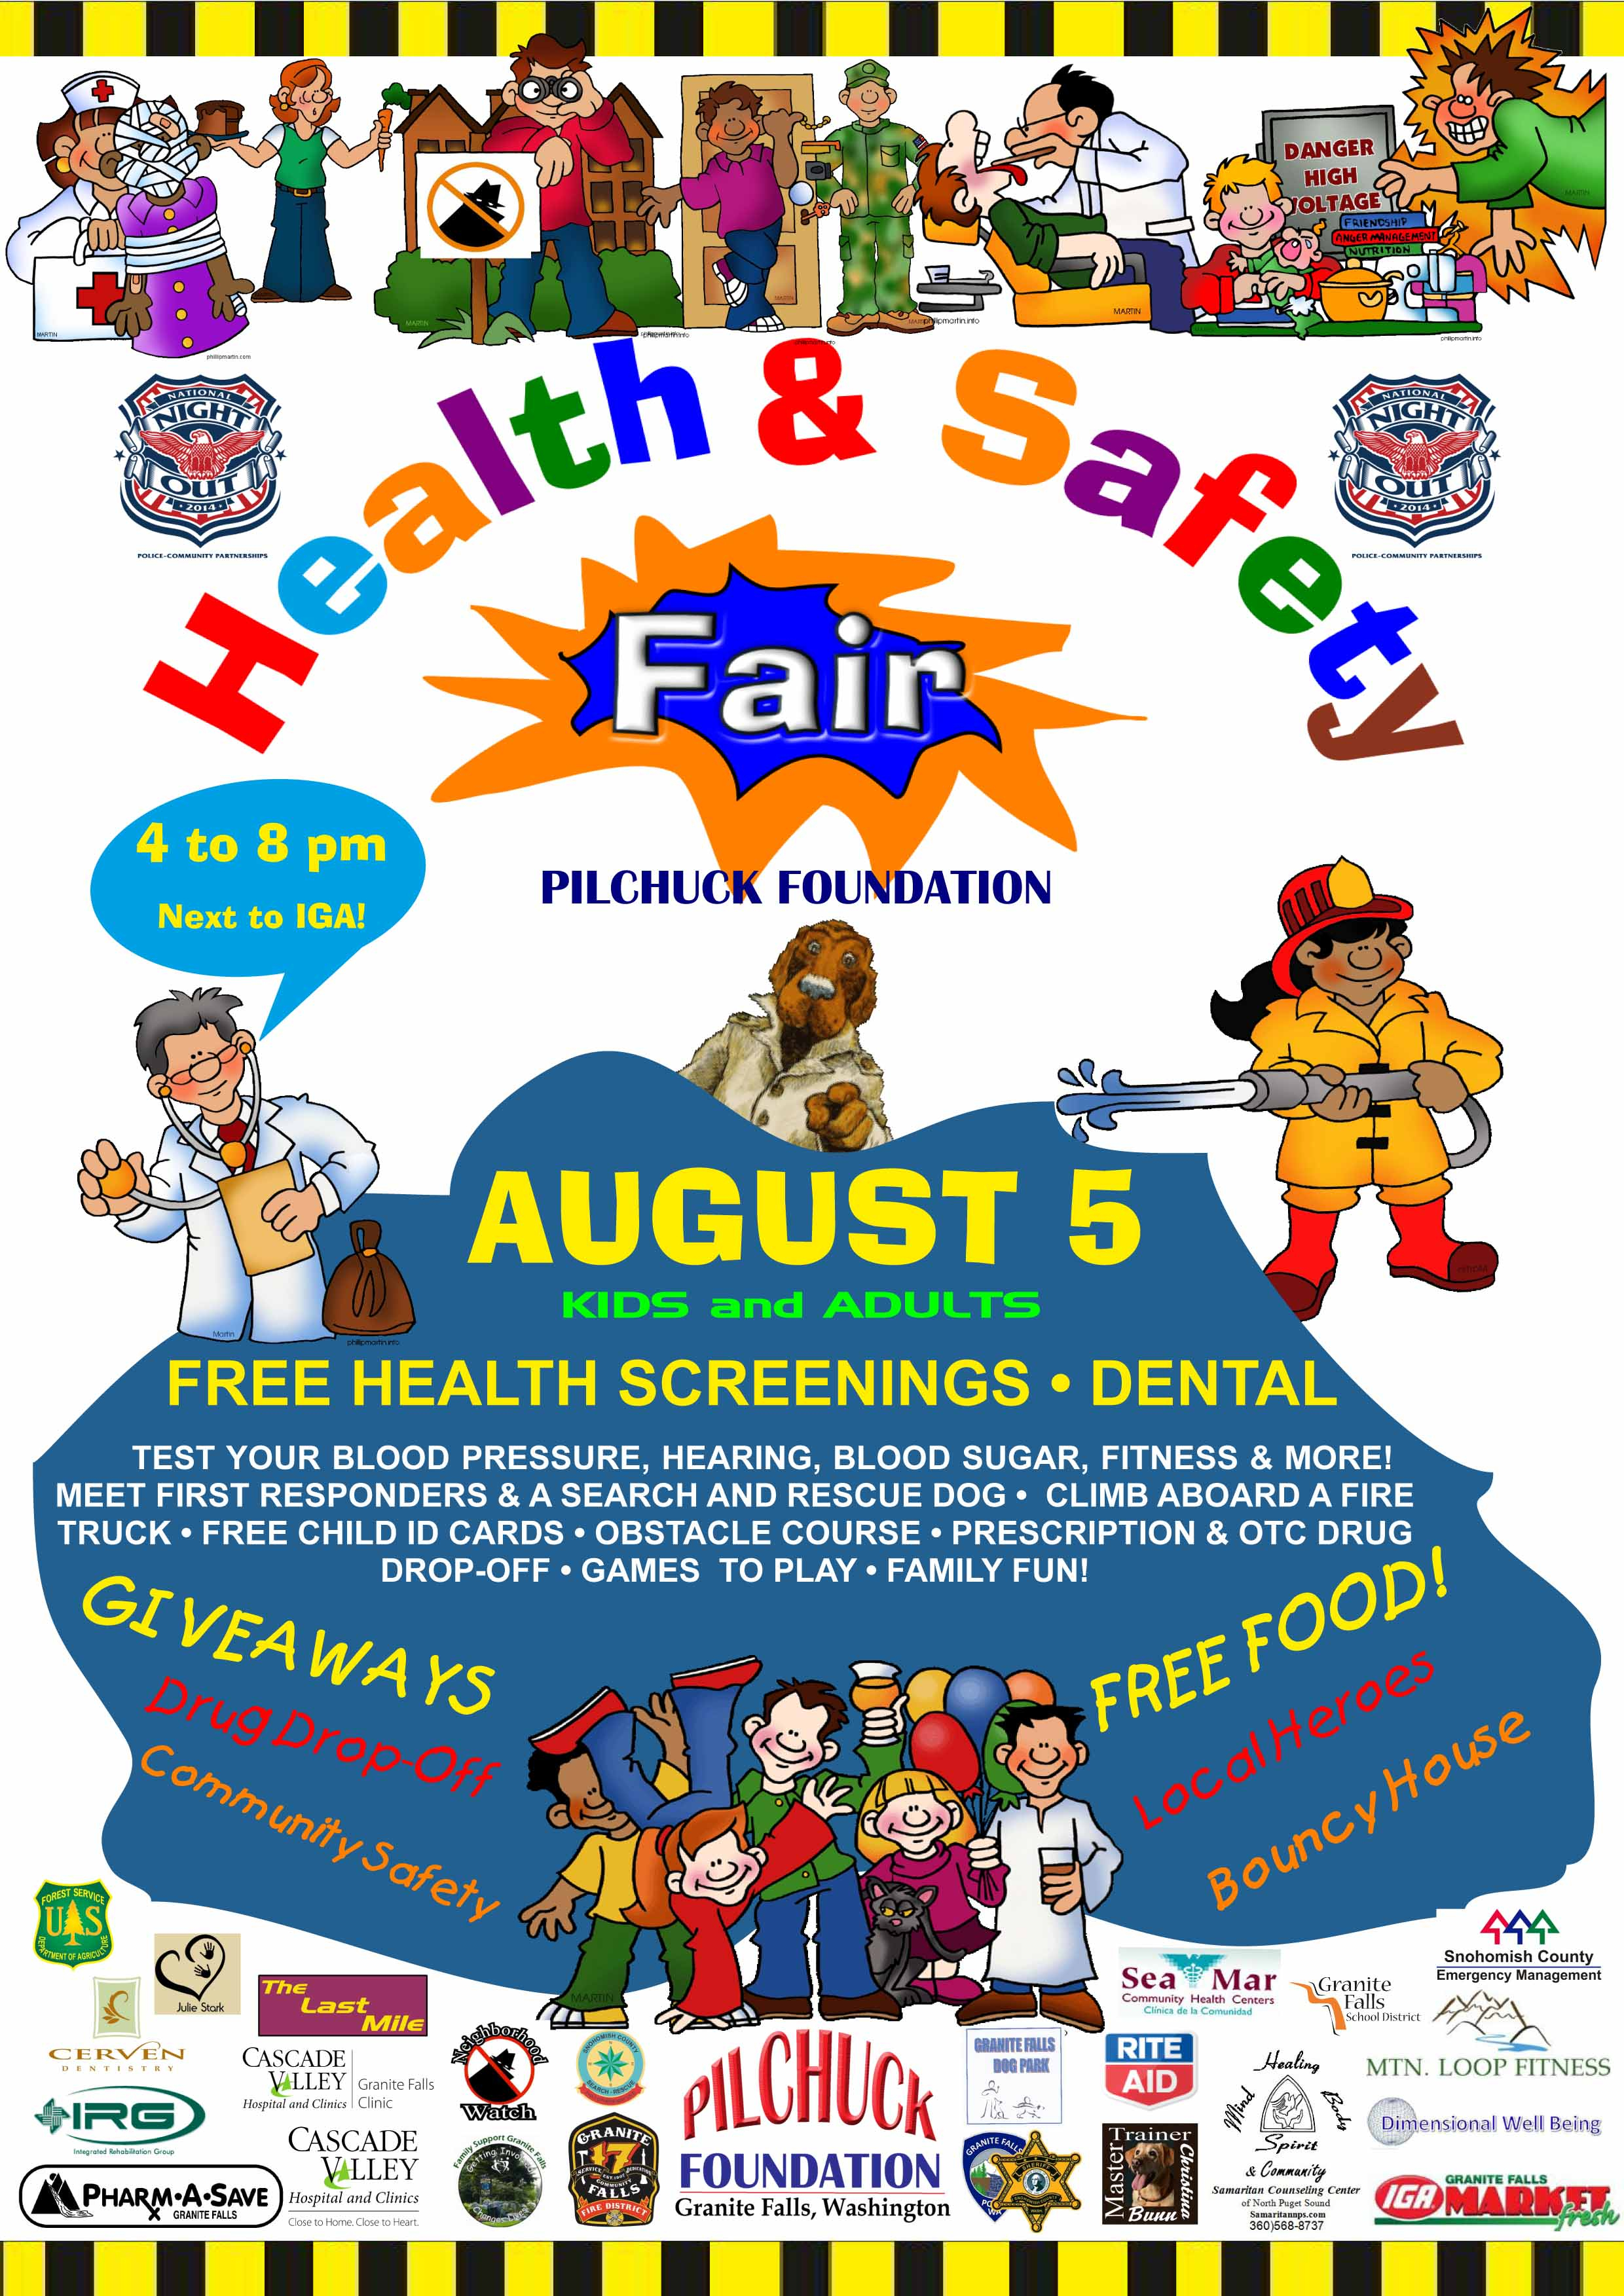 10 Cute Health And Safety Fair Ideas national night out in gf pilchuck foundation 2021